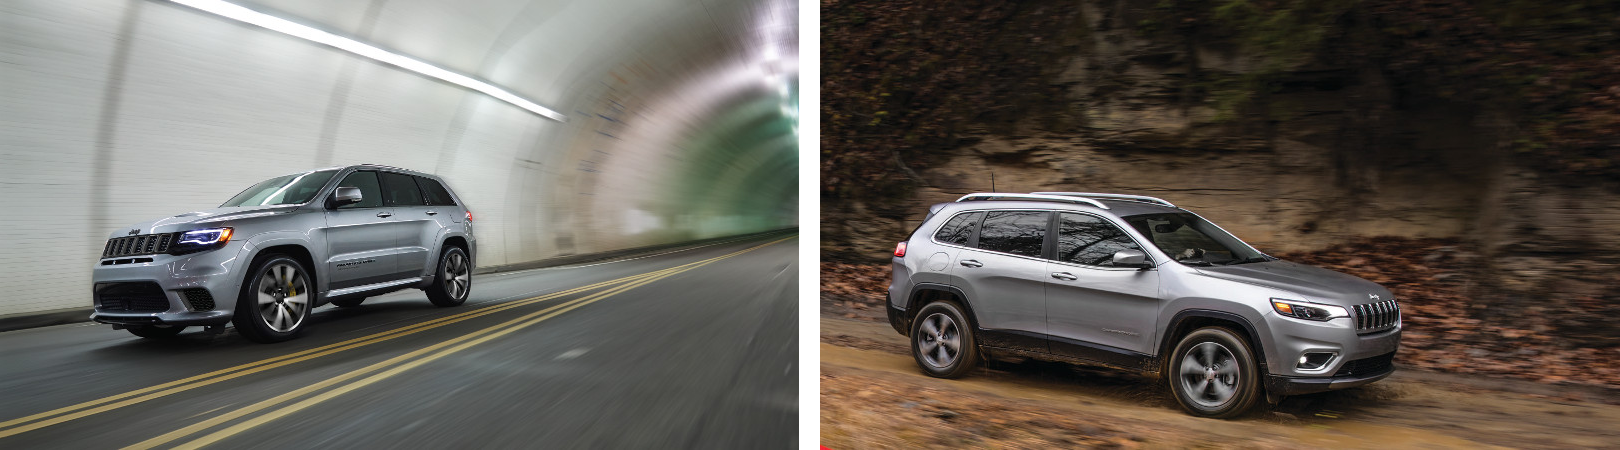 A comparison of the Grand Cherokee and Cherokee performance